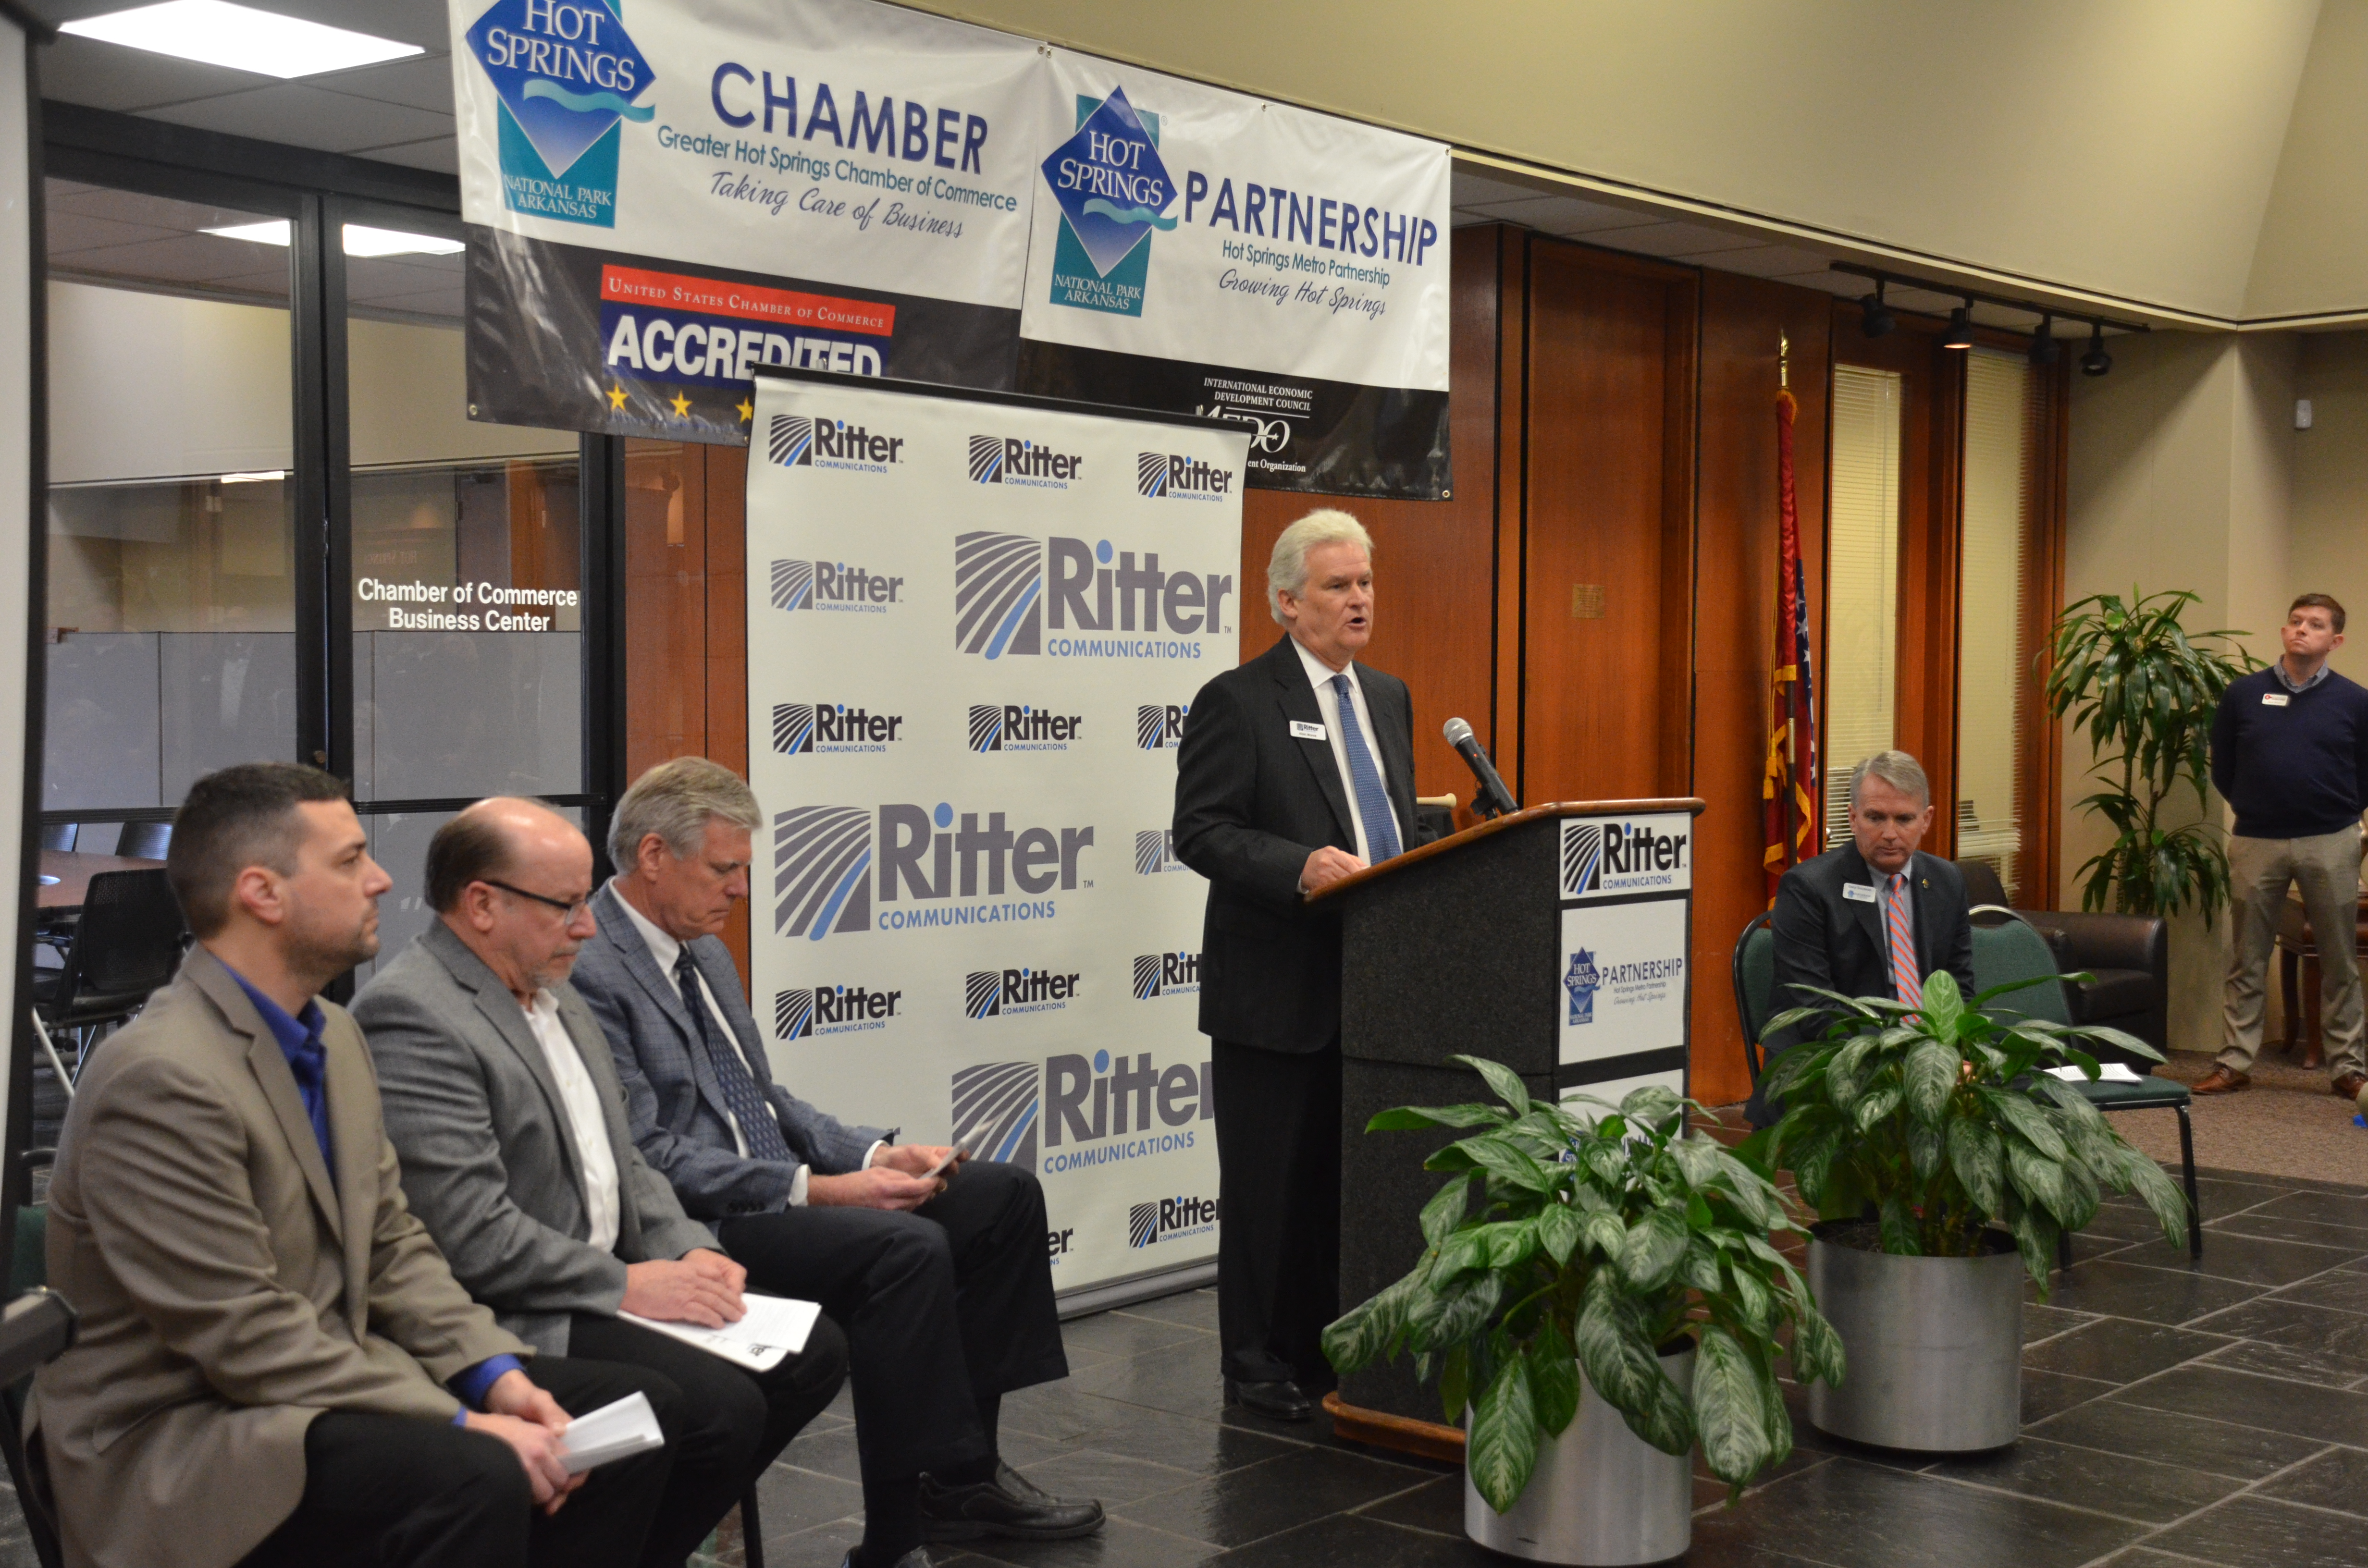 Hot Springs Ritter Communications Press Conference